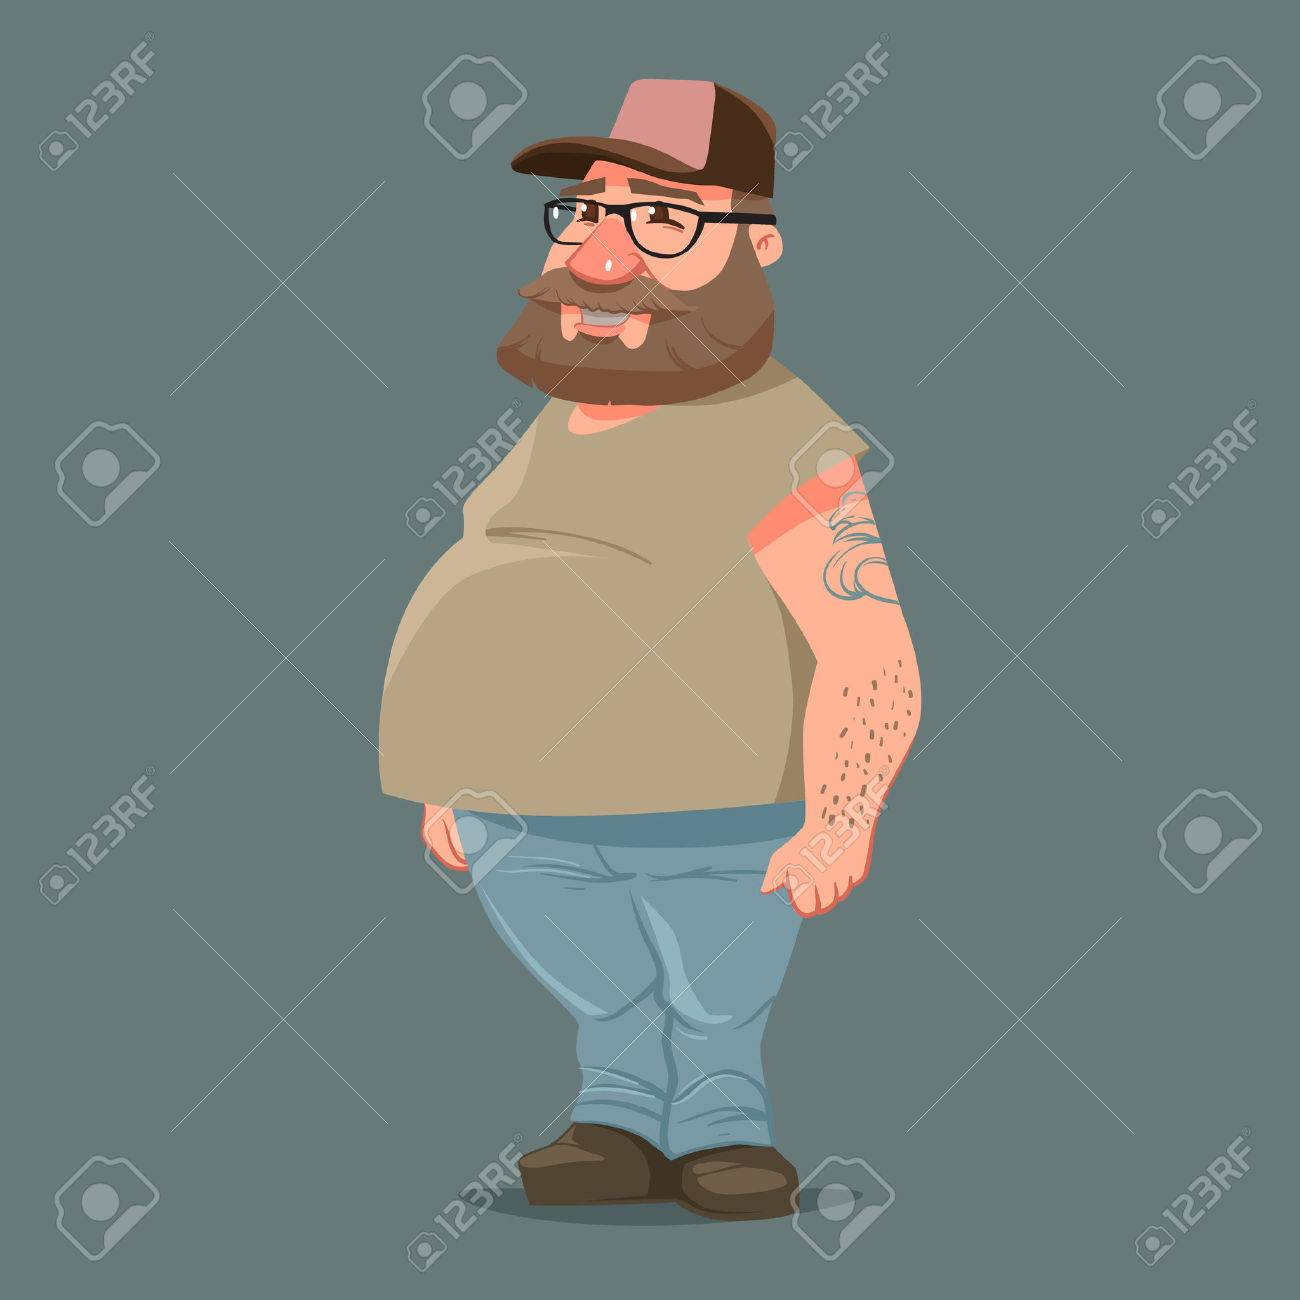 45a658b9 funny cartoon character, truck driver with beard in trucker cap, vector  color illustration Stock